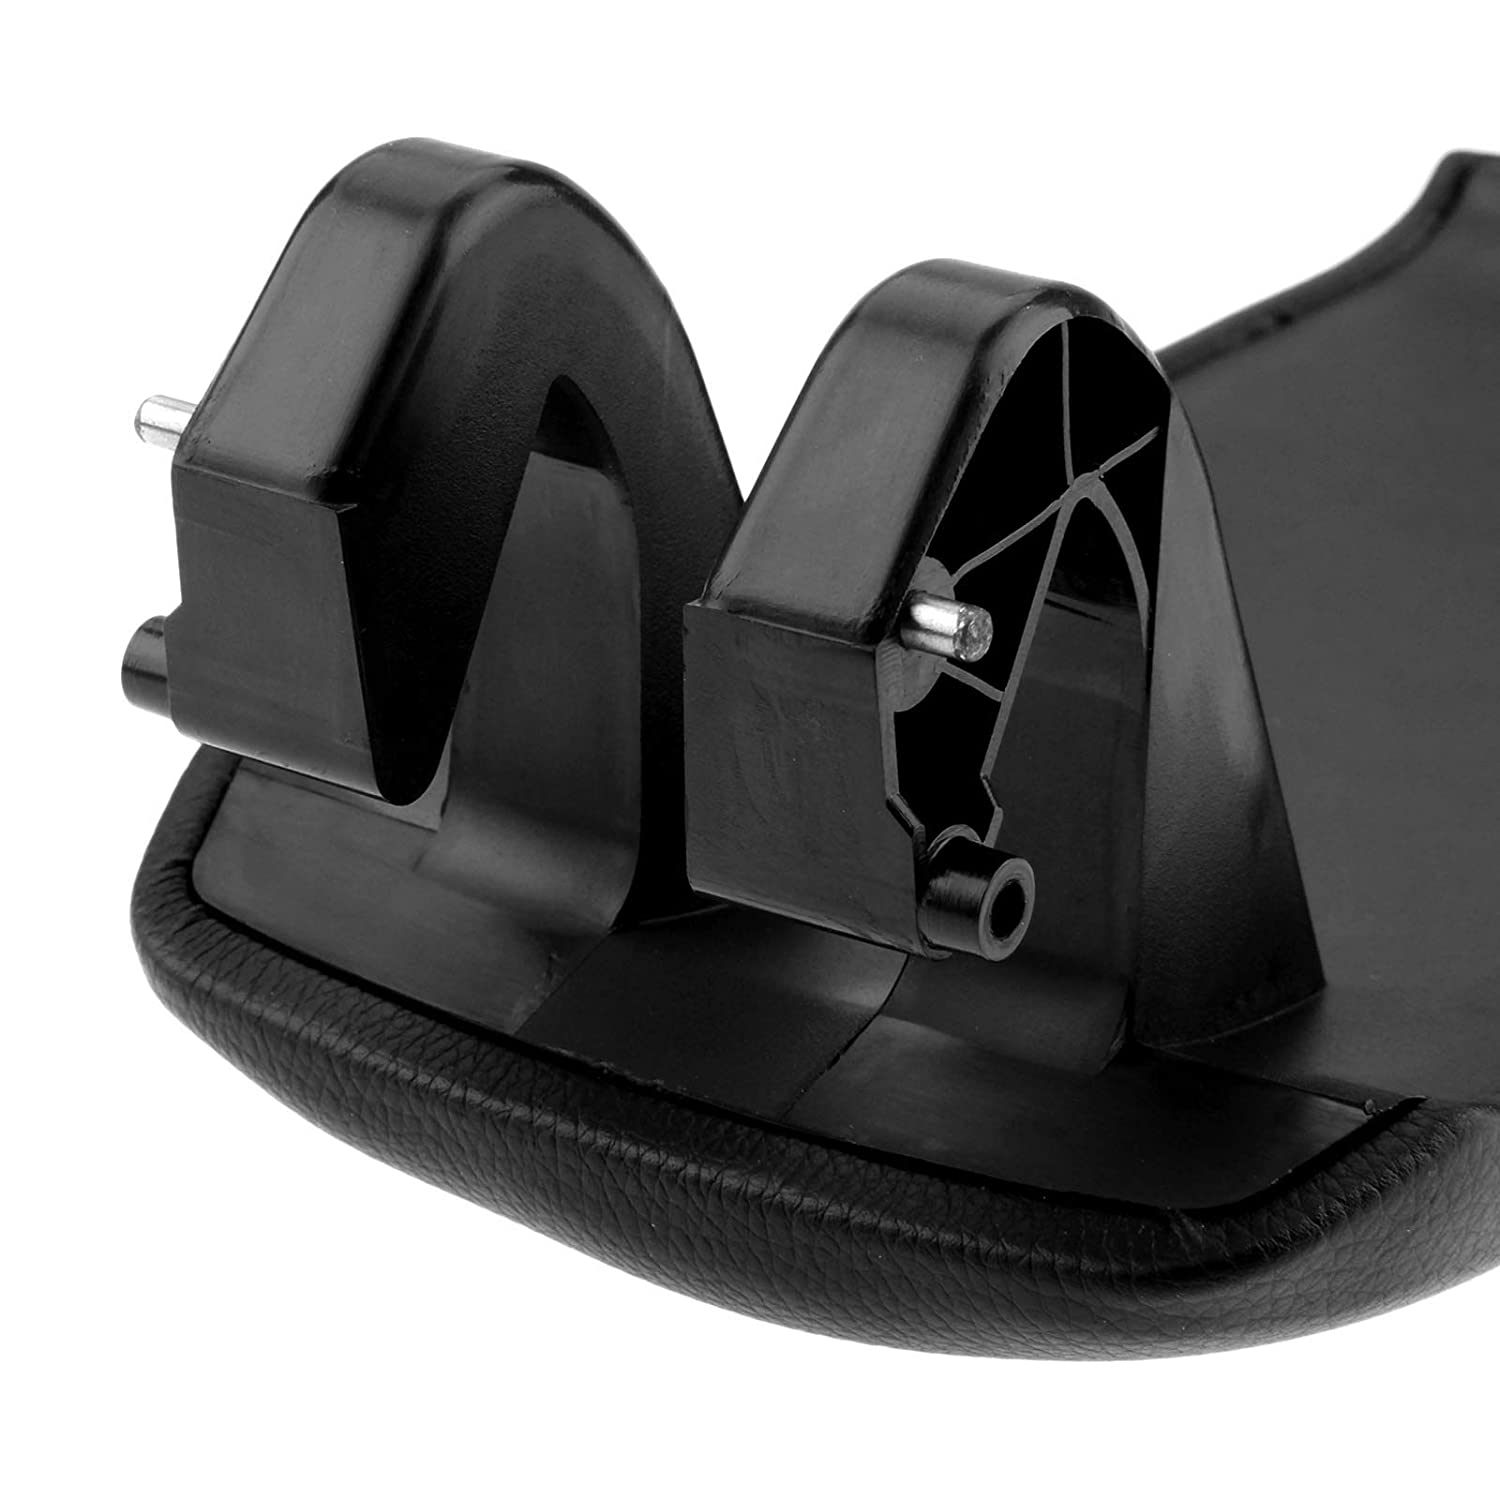 Fits for 2003-2012 Audi A3 S3 A5 Black Lid Cover Cap Pad with Base Plate Aupoko Auto Leather Center Console Armrest Lid Cover 8P0864245P